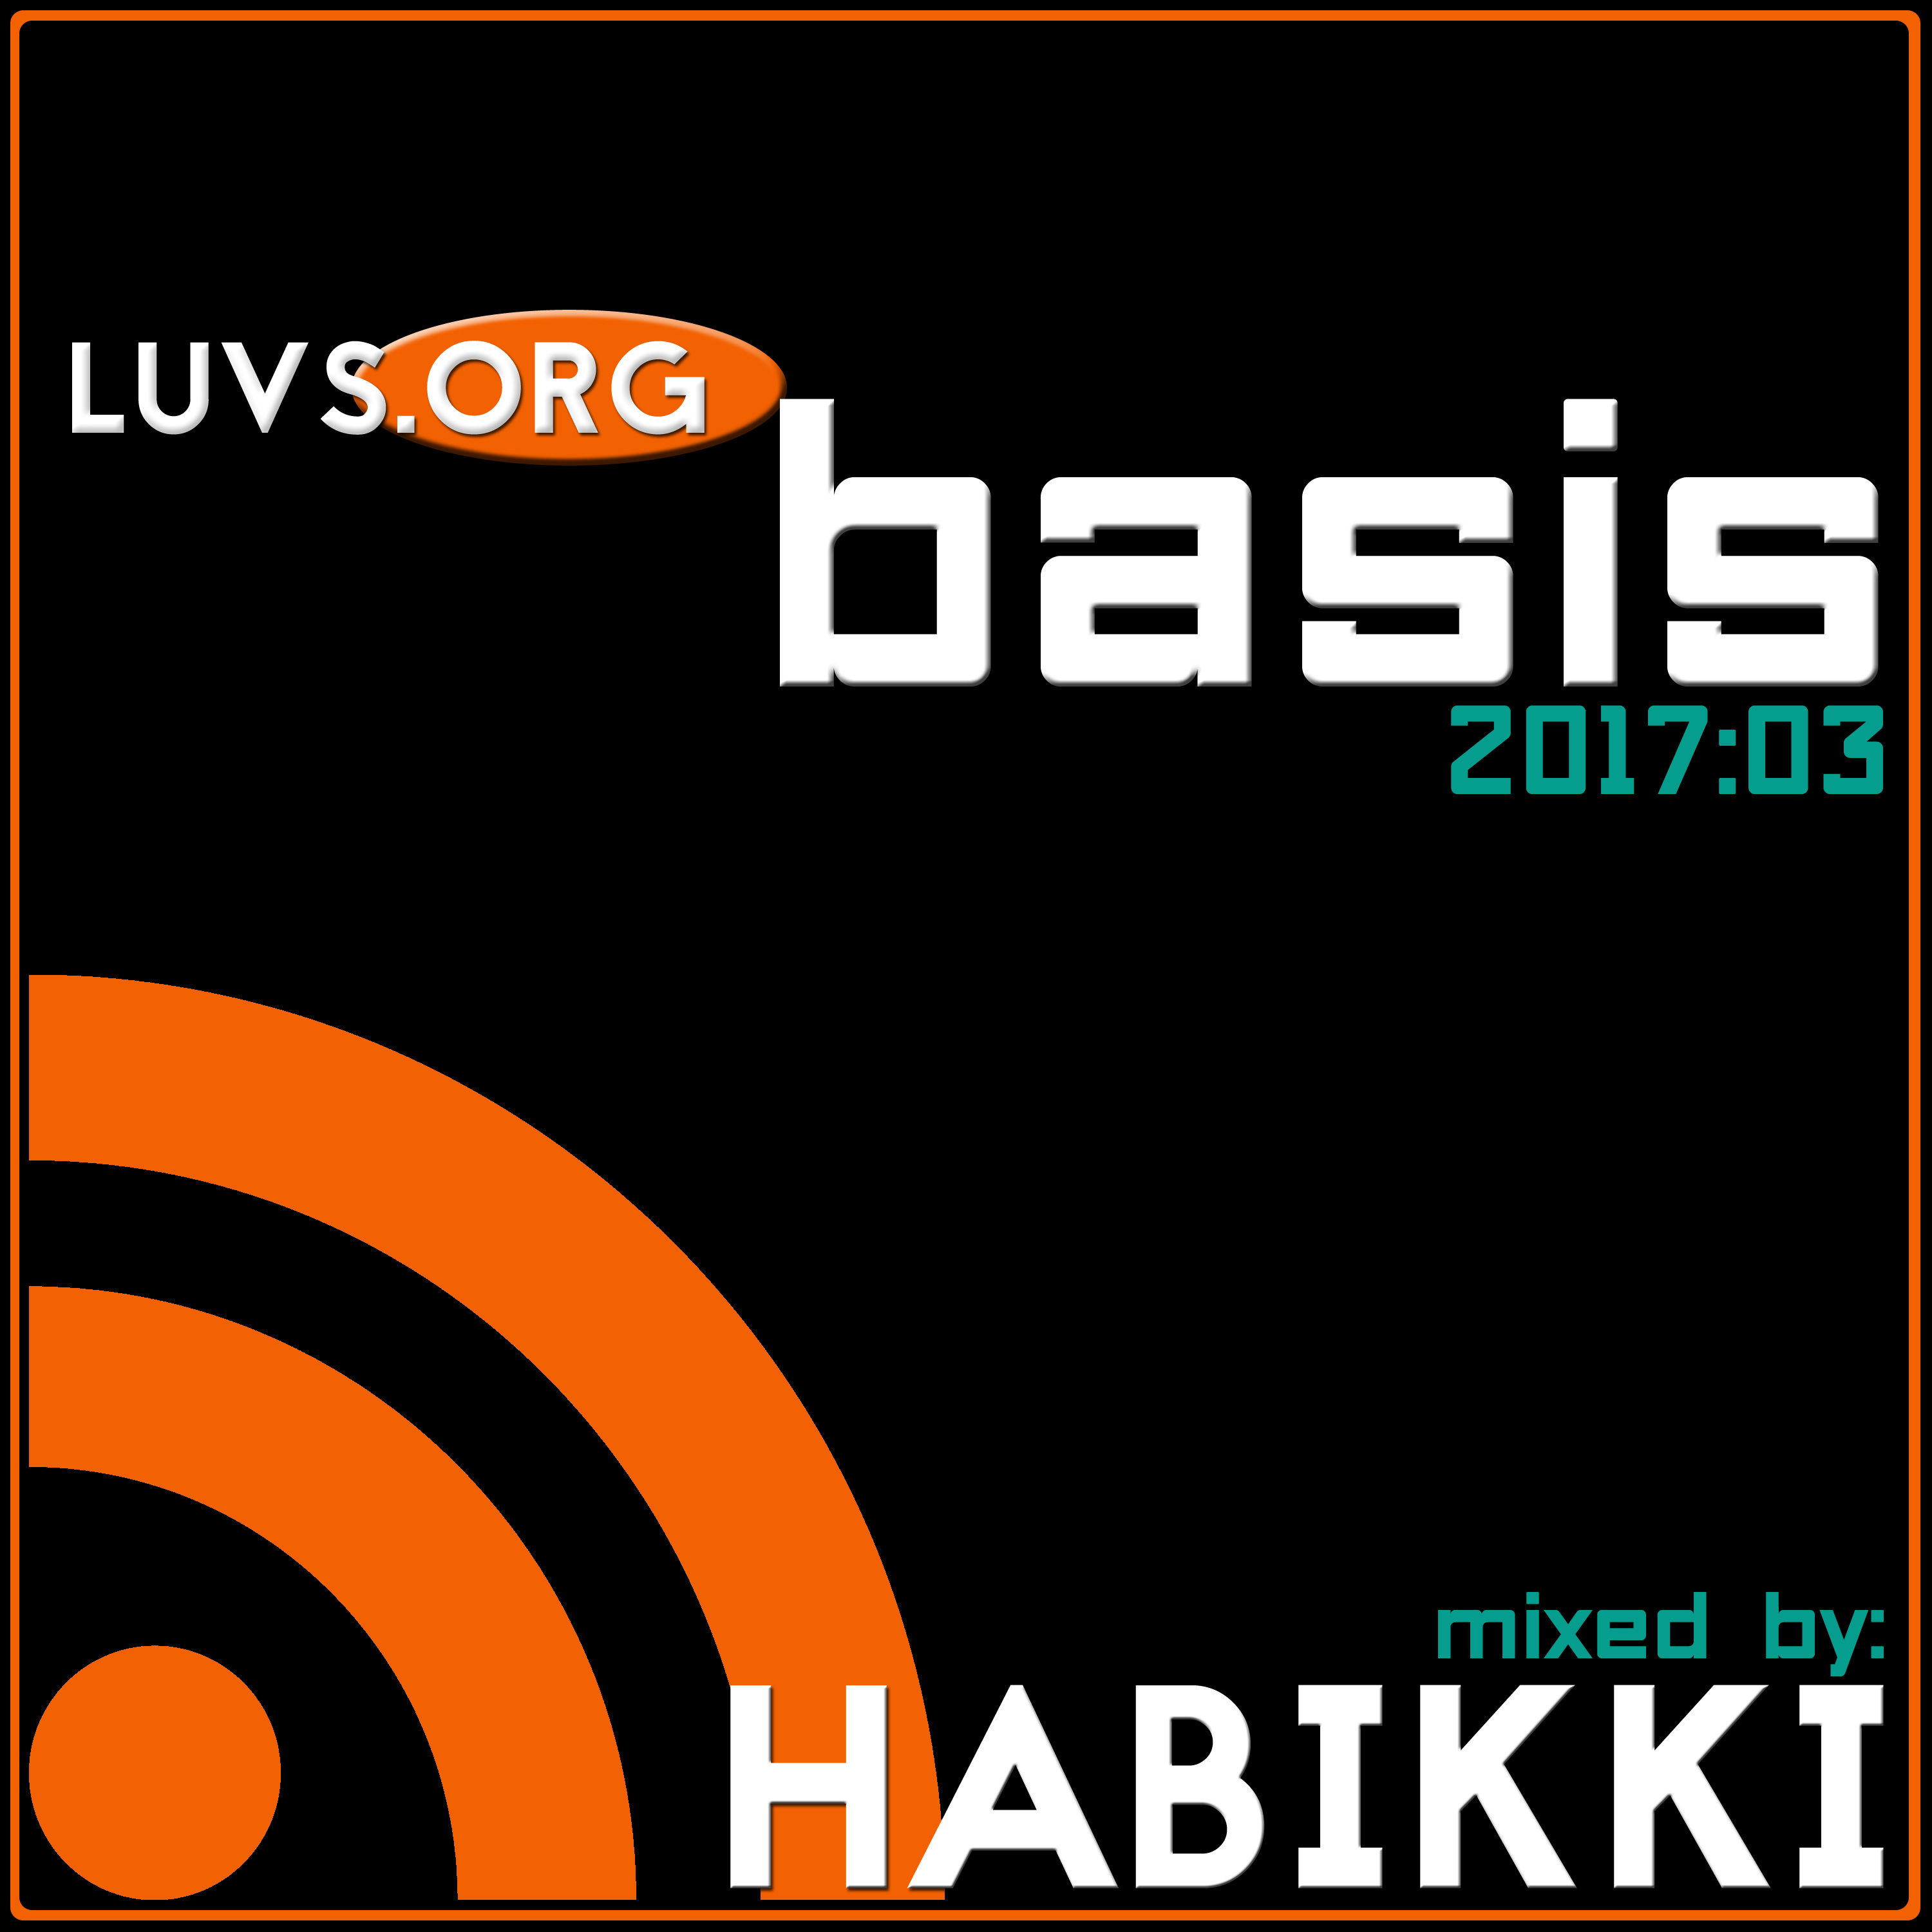 Luvs.org Sessions: [2017:03] Basis